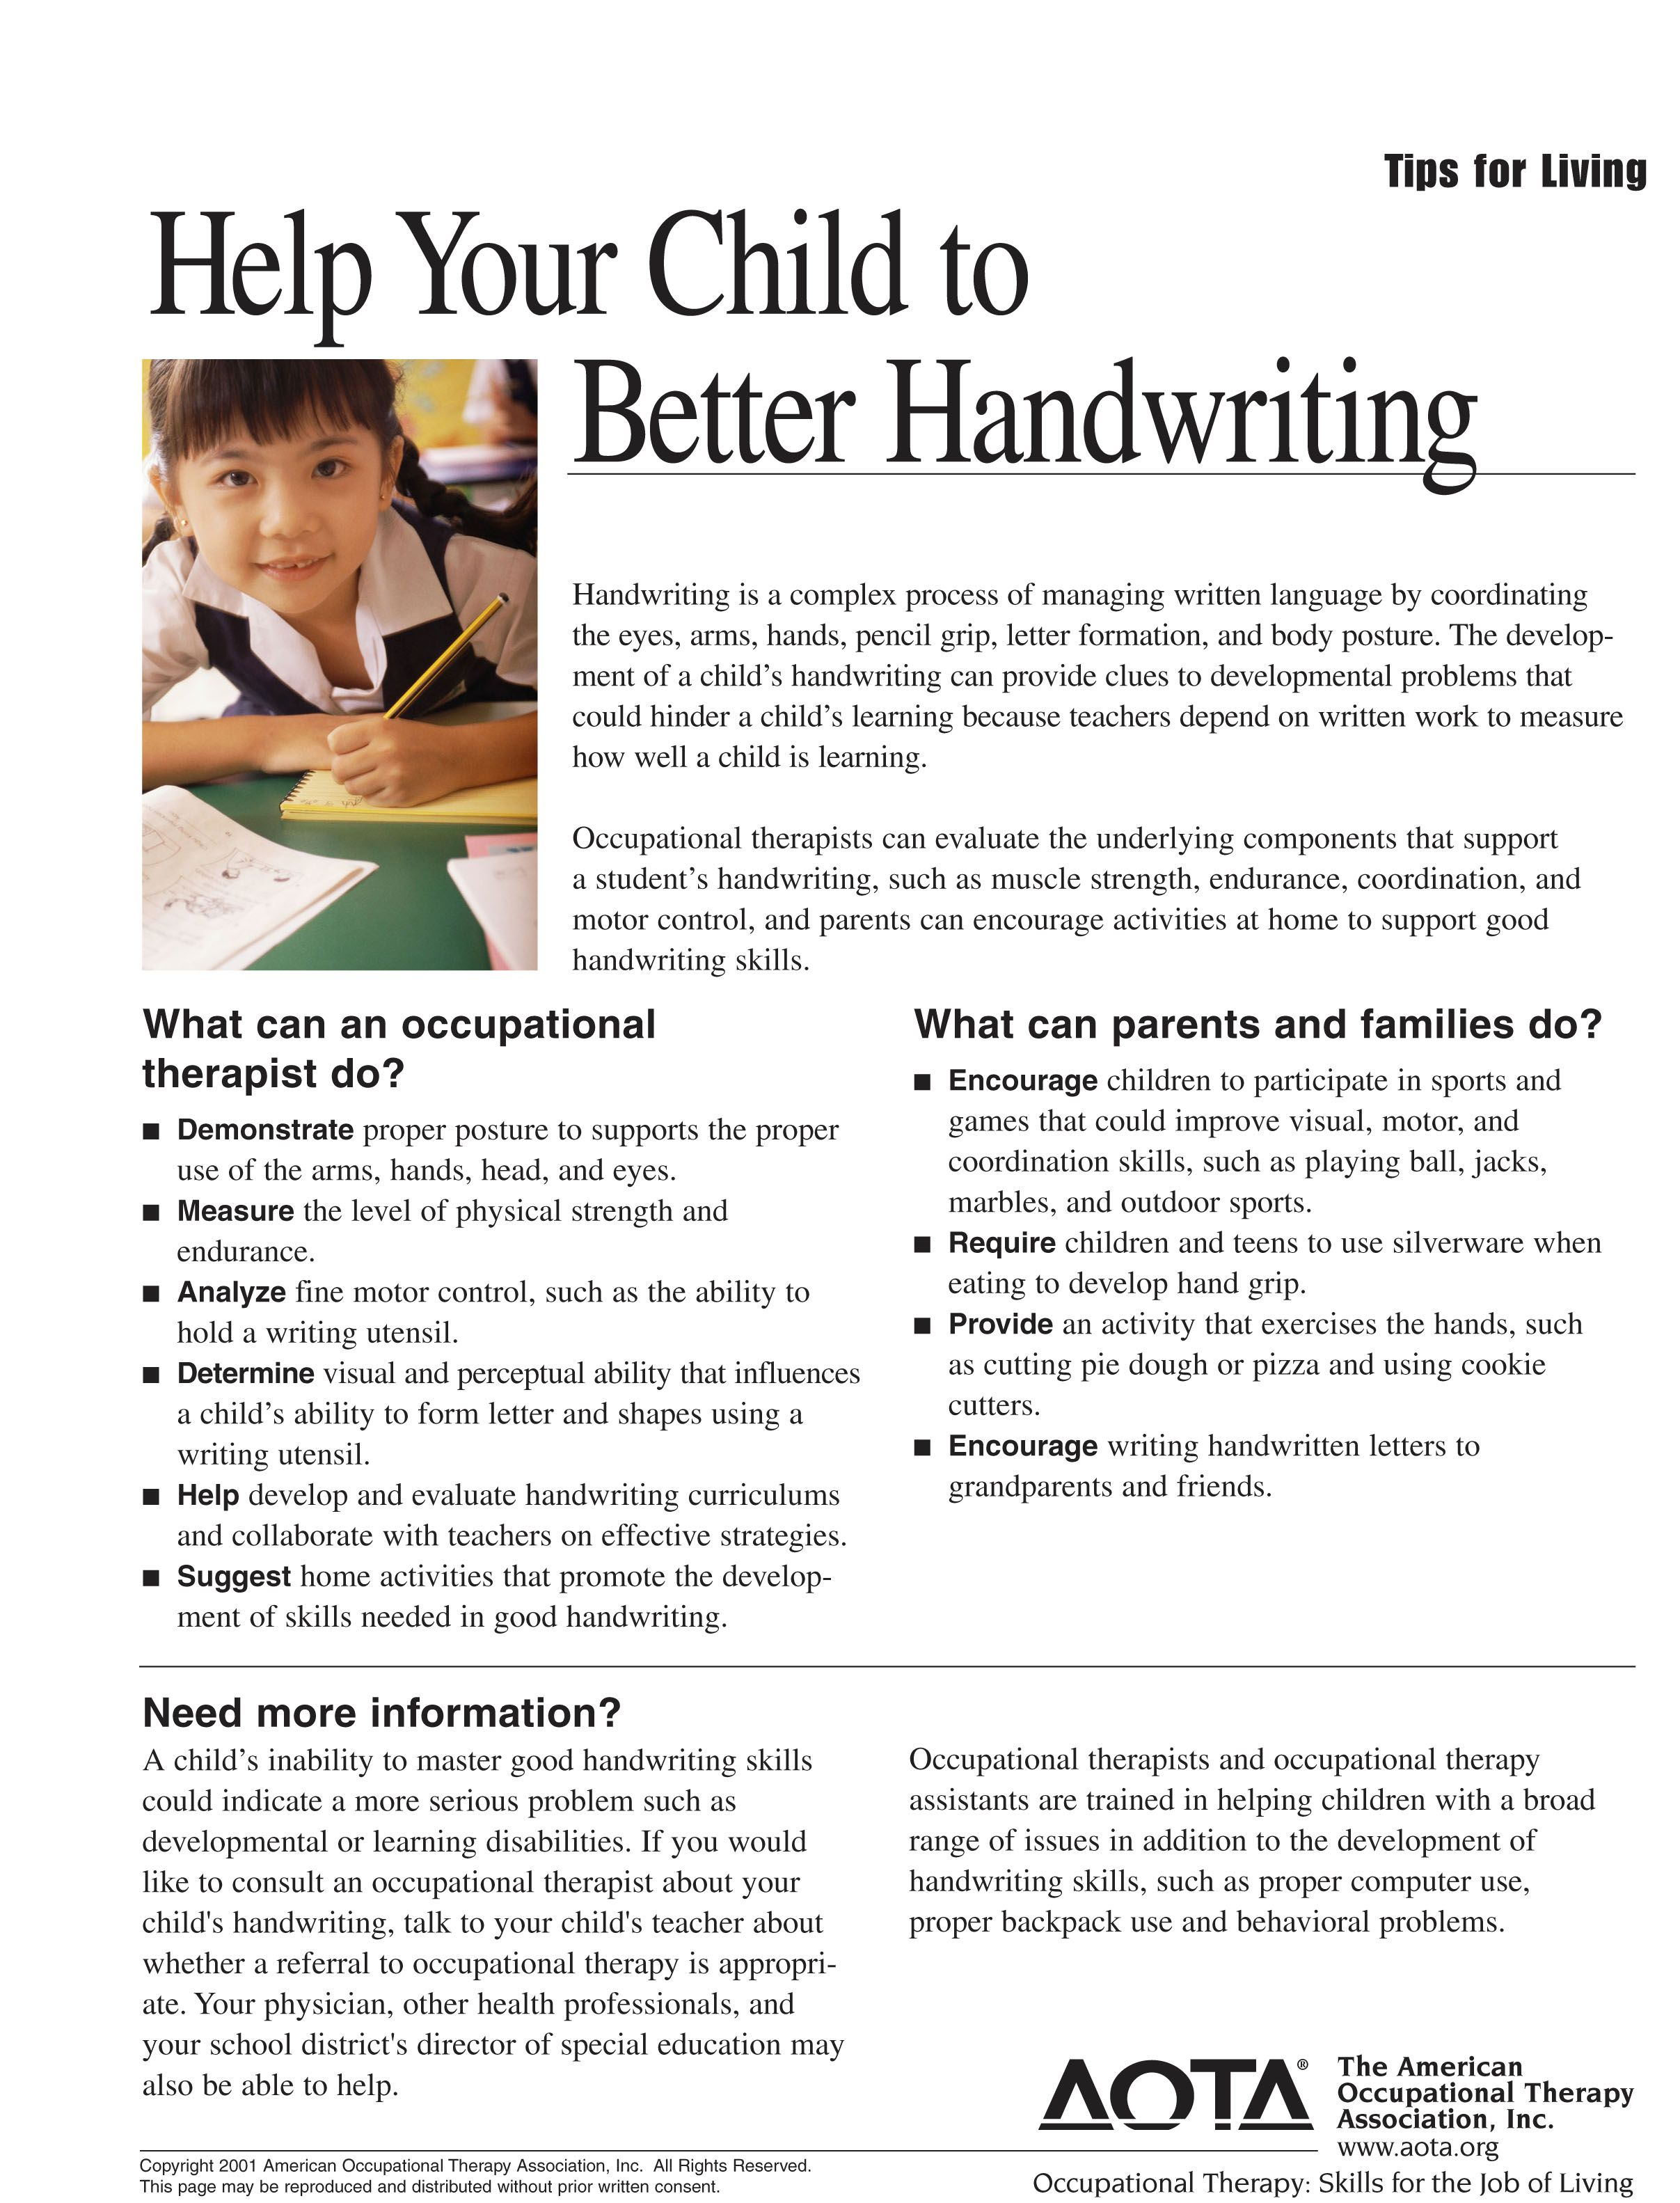 This Handwriting Worksheet Shows What Occupational Therapists And Parents Families Can Do To